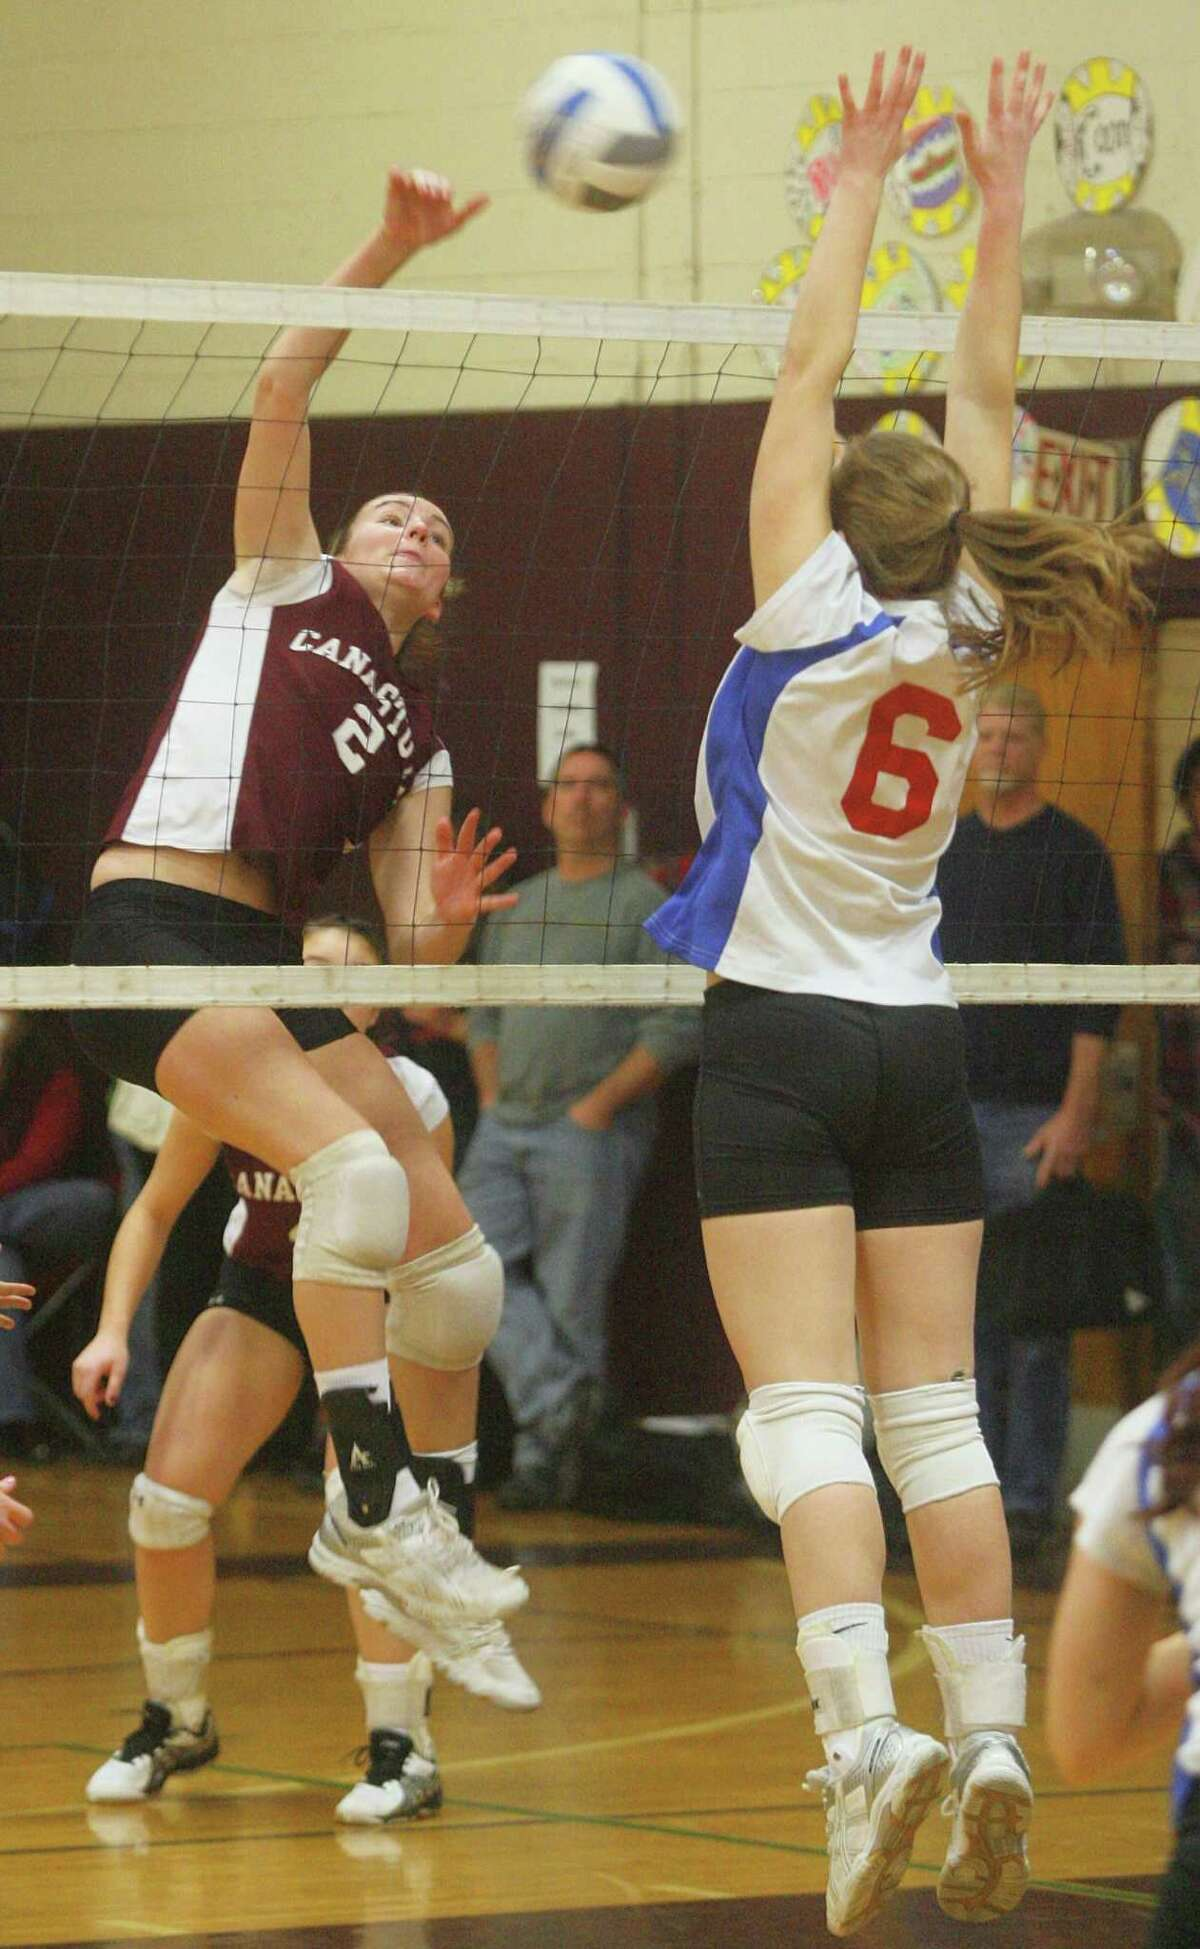 Dispatch Staff Photo by JOHN HAEGER twitter.com/oneidaphoto Canastota Tracy O'Hern (2) puts a shot over the net as New Hartford Nichole Pollard (6) defends during play in the Marcia